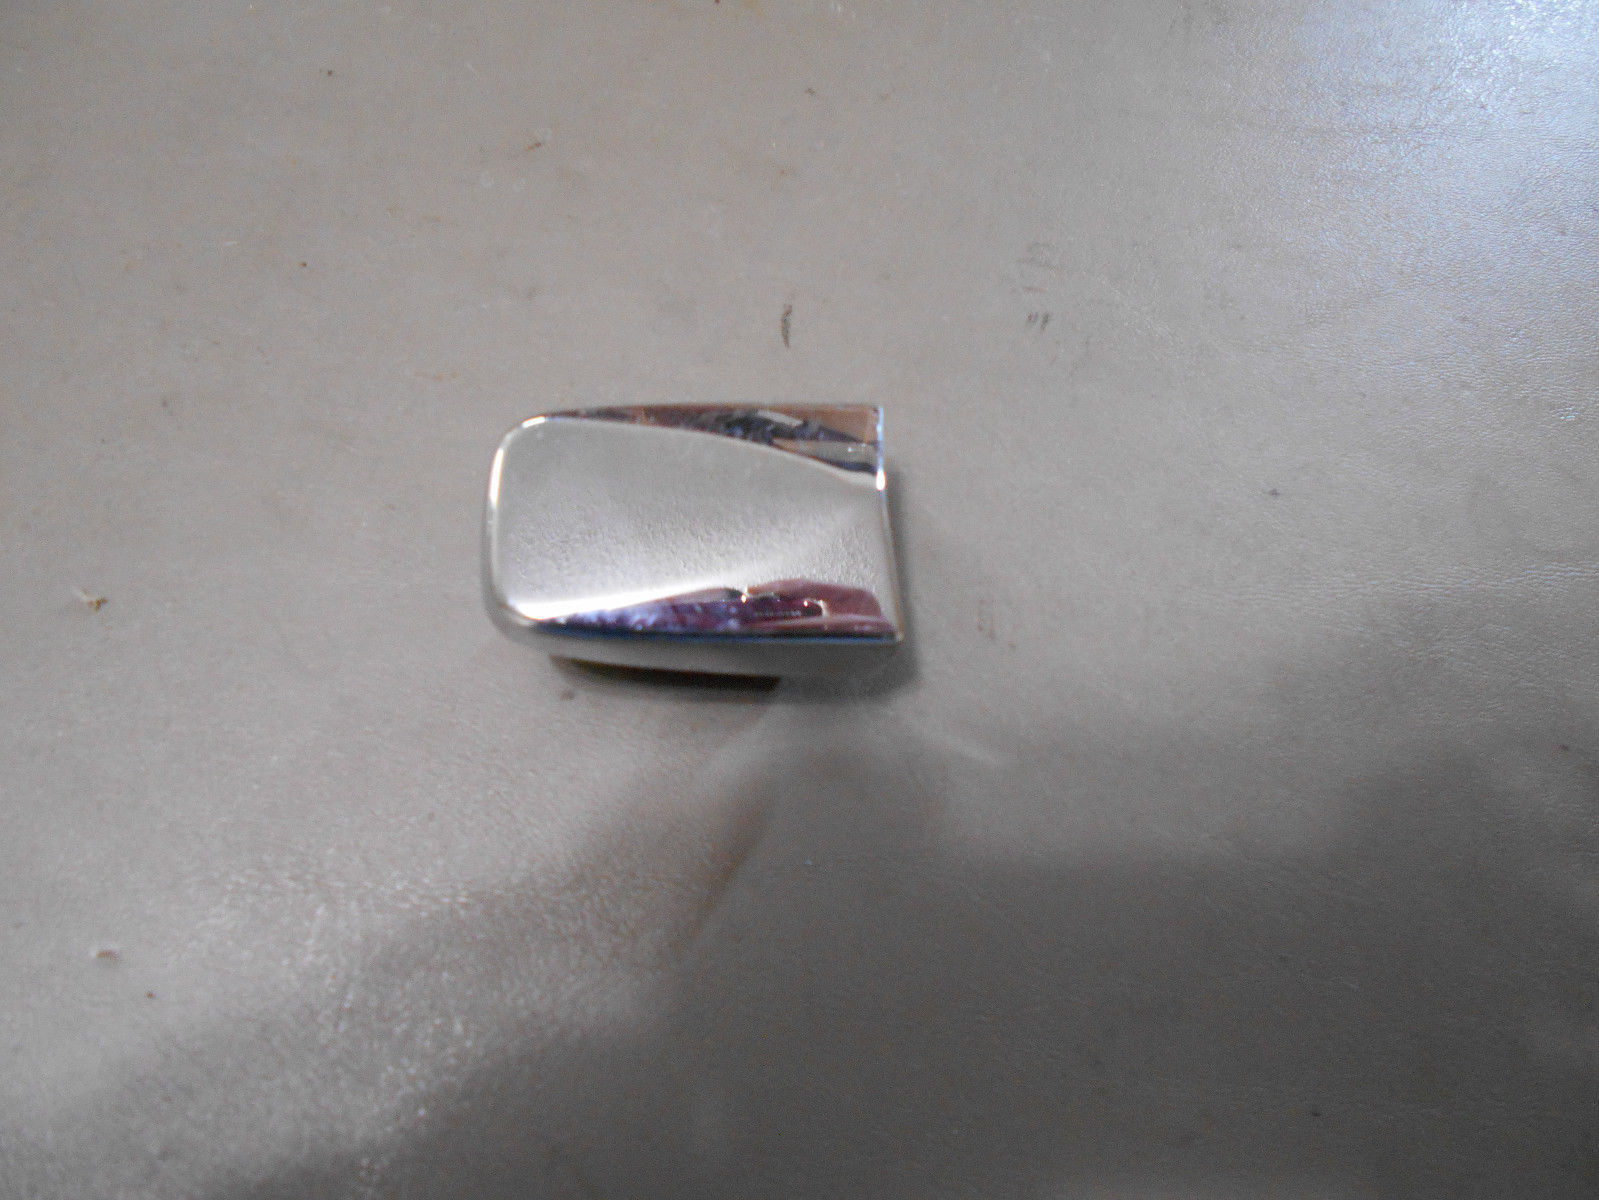 Primary image for 13-15 Sentra LH Drivers Side Rear Door Exterior Handle Chrome Rear Section